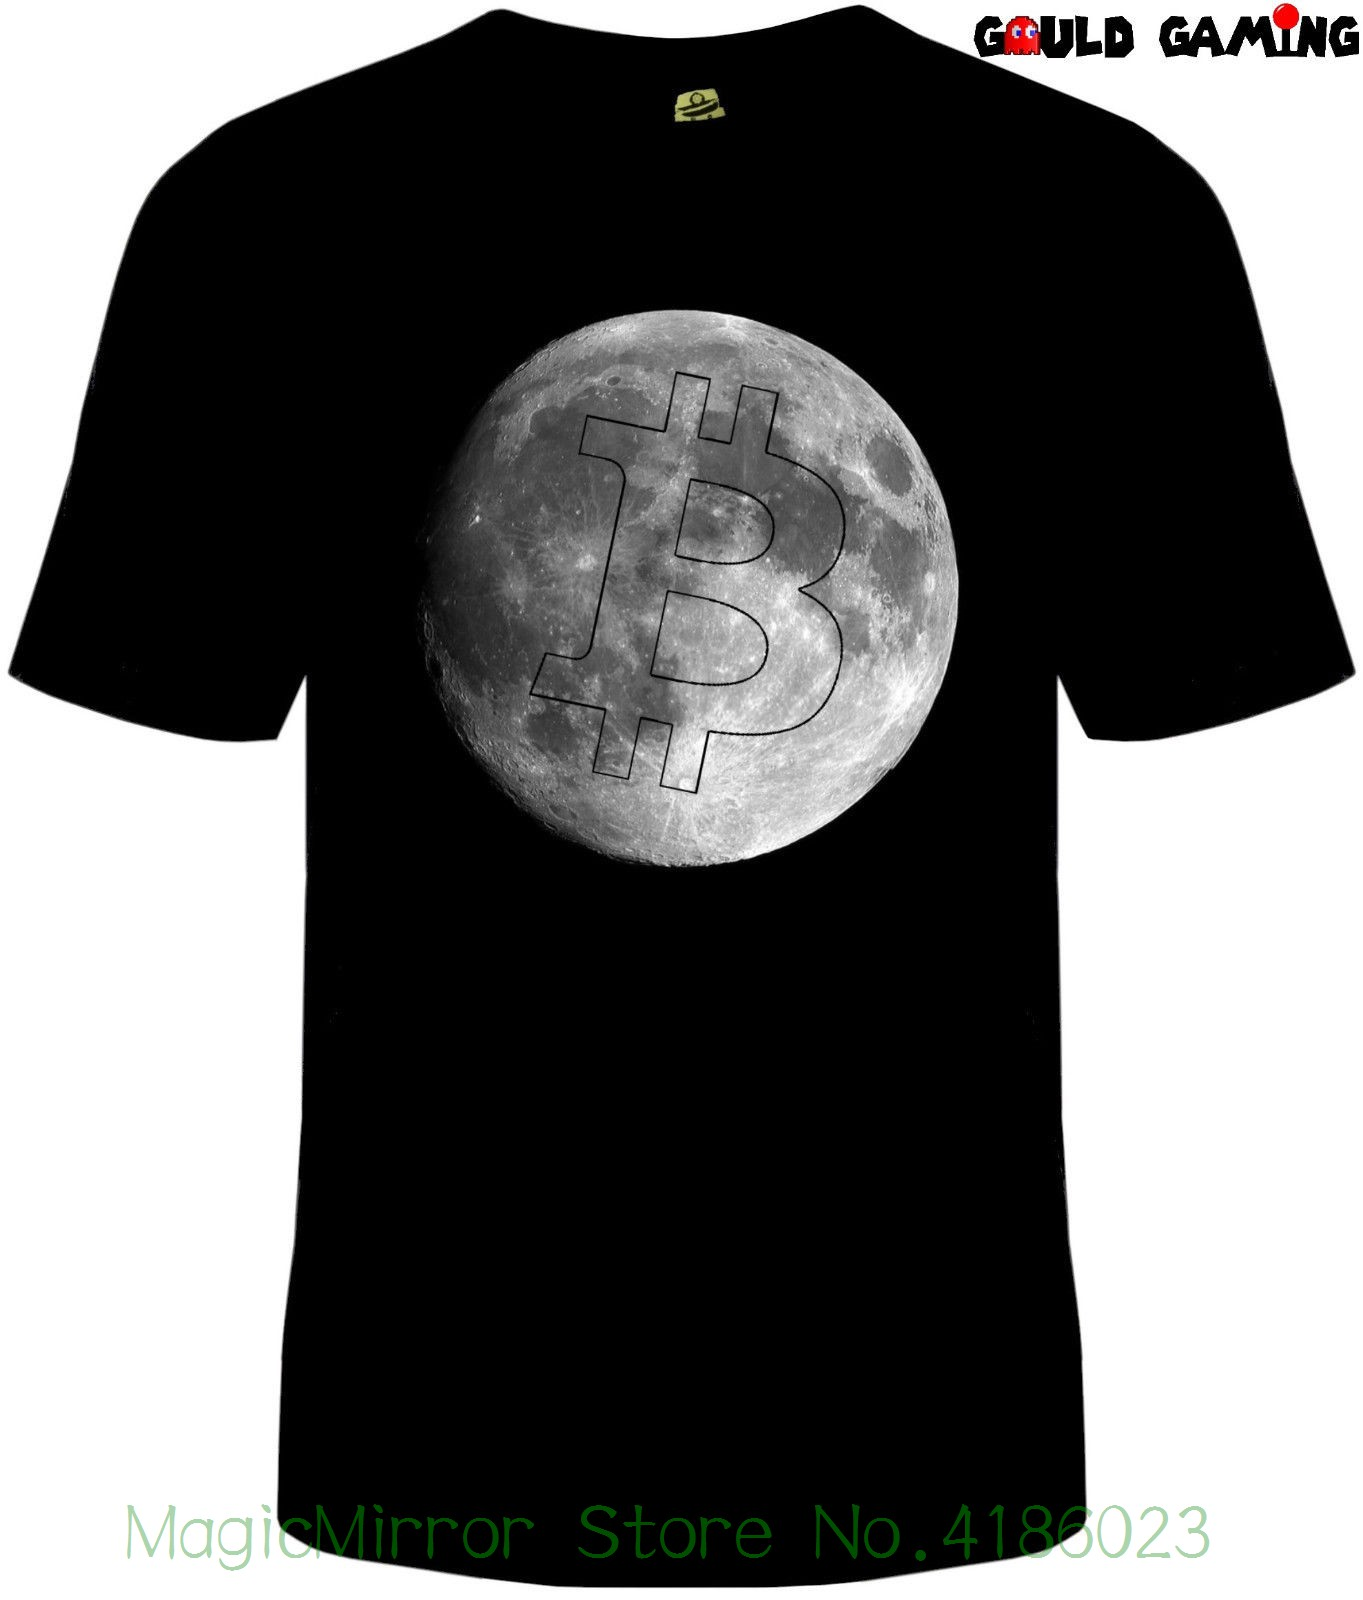 Bitcoin Moon T-shirt Unisex Cotton Adult Sizes Ethereum Litecoin Crypto Hot Sell 2018 Fashion